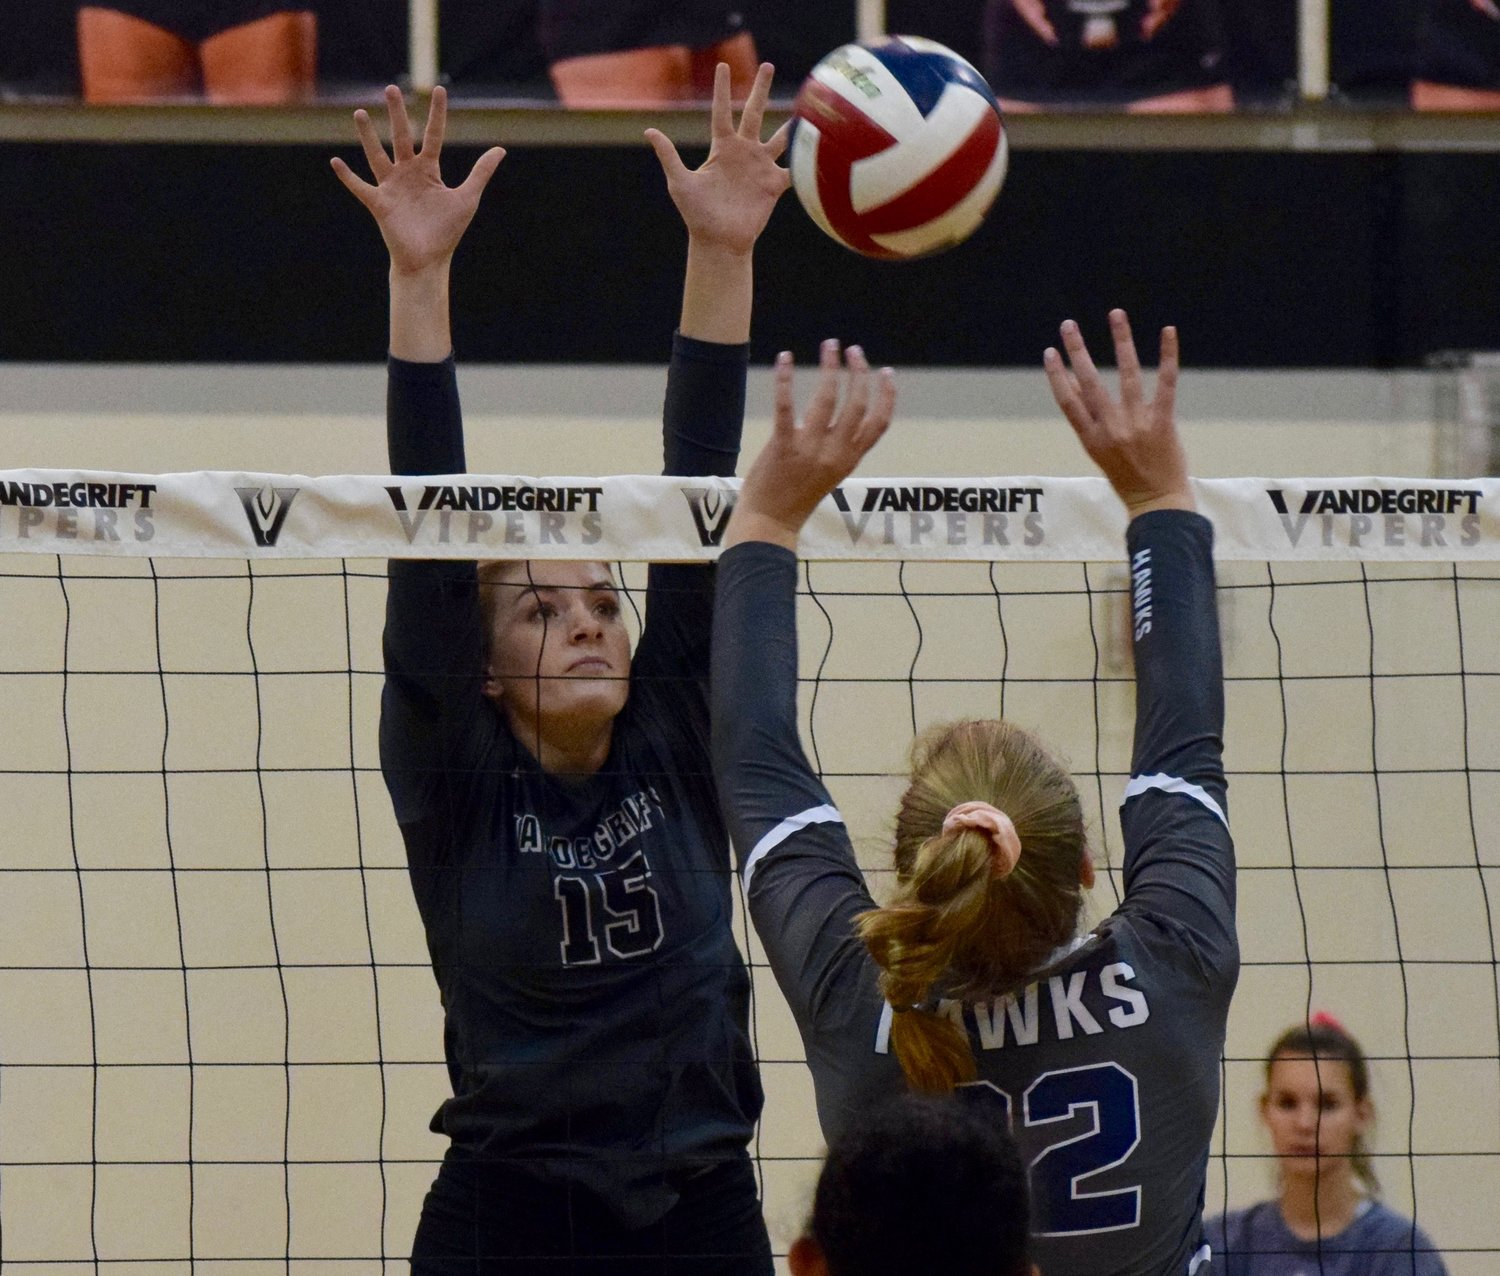 Ari Orrick and Vandegrift swept Hendrickson 3-0 on Tuesday night to clinch the District 13-6A title.